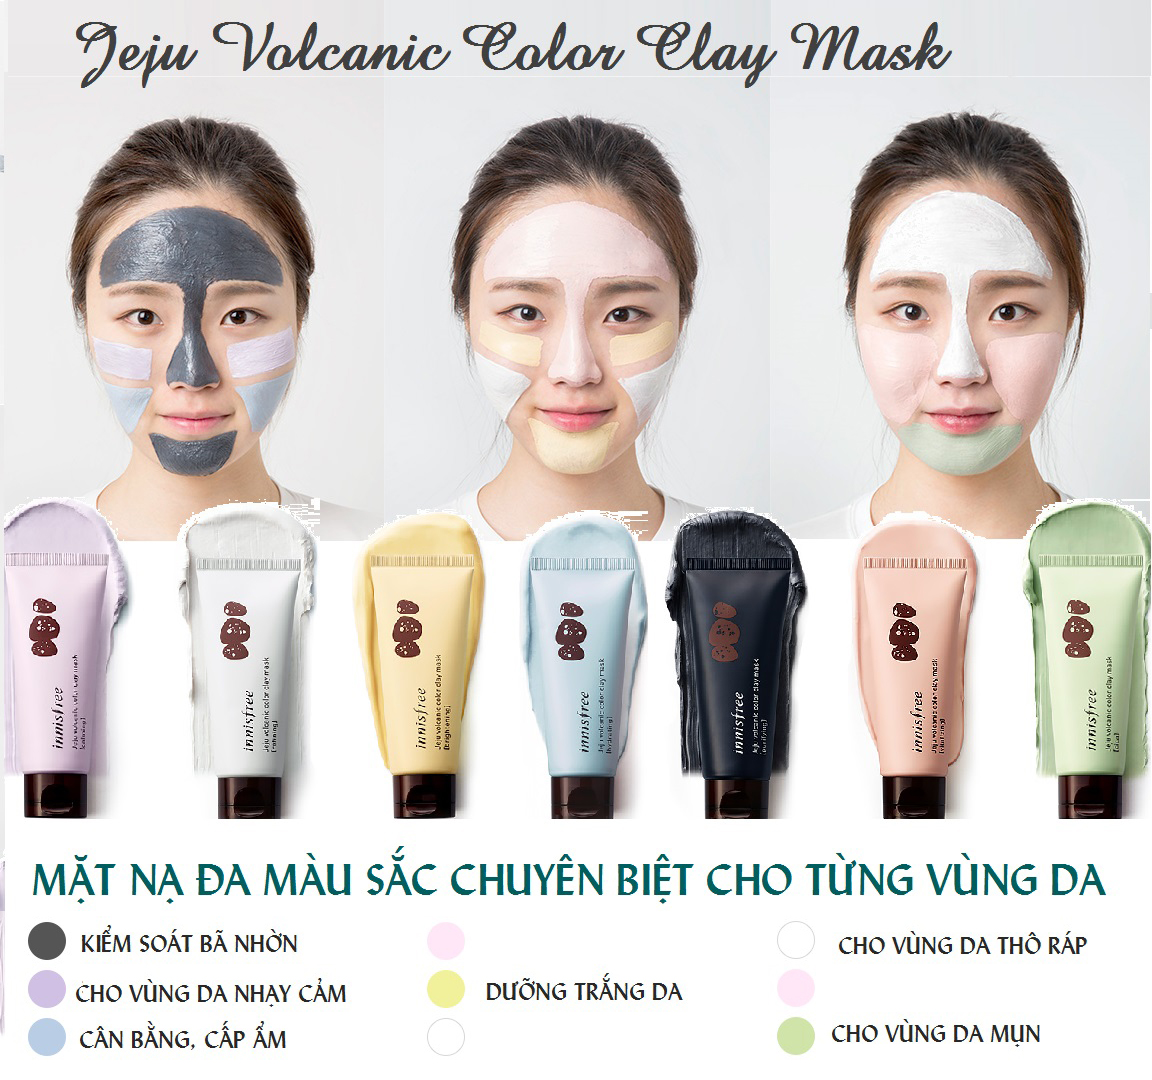 mat-na-cho-tung-vung-da-–-innissfree-jeju-volcanic-color-clay-mask